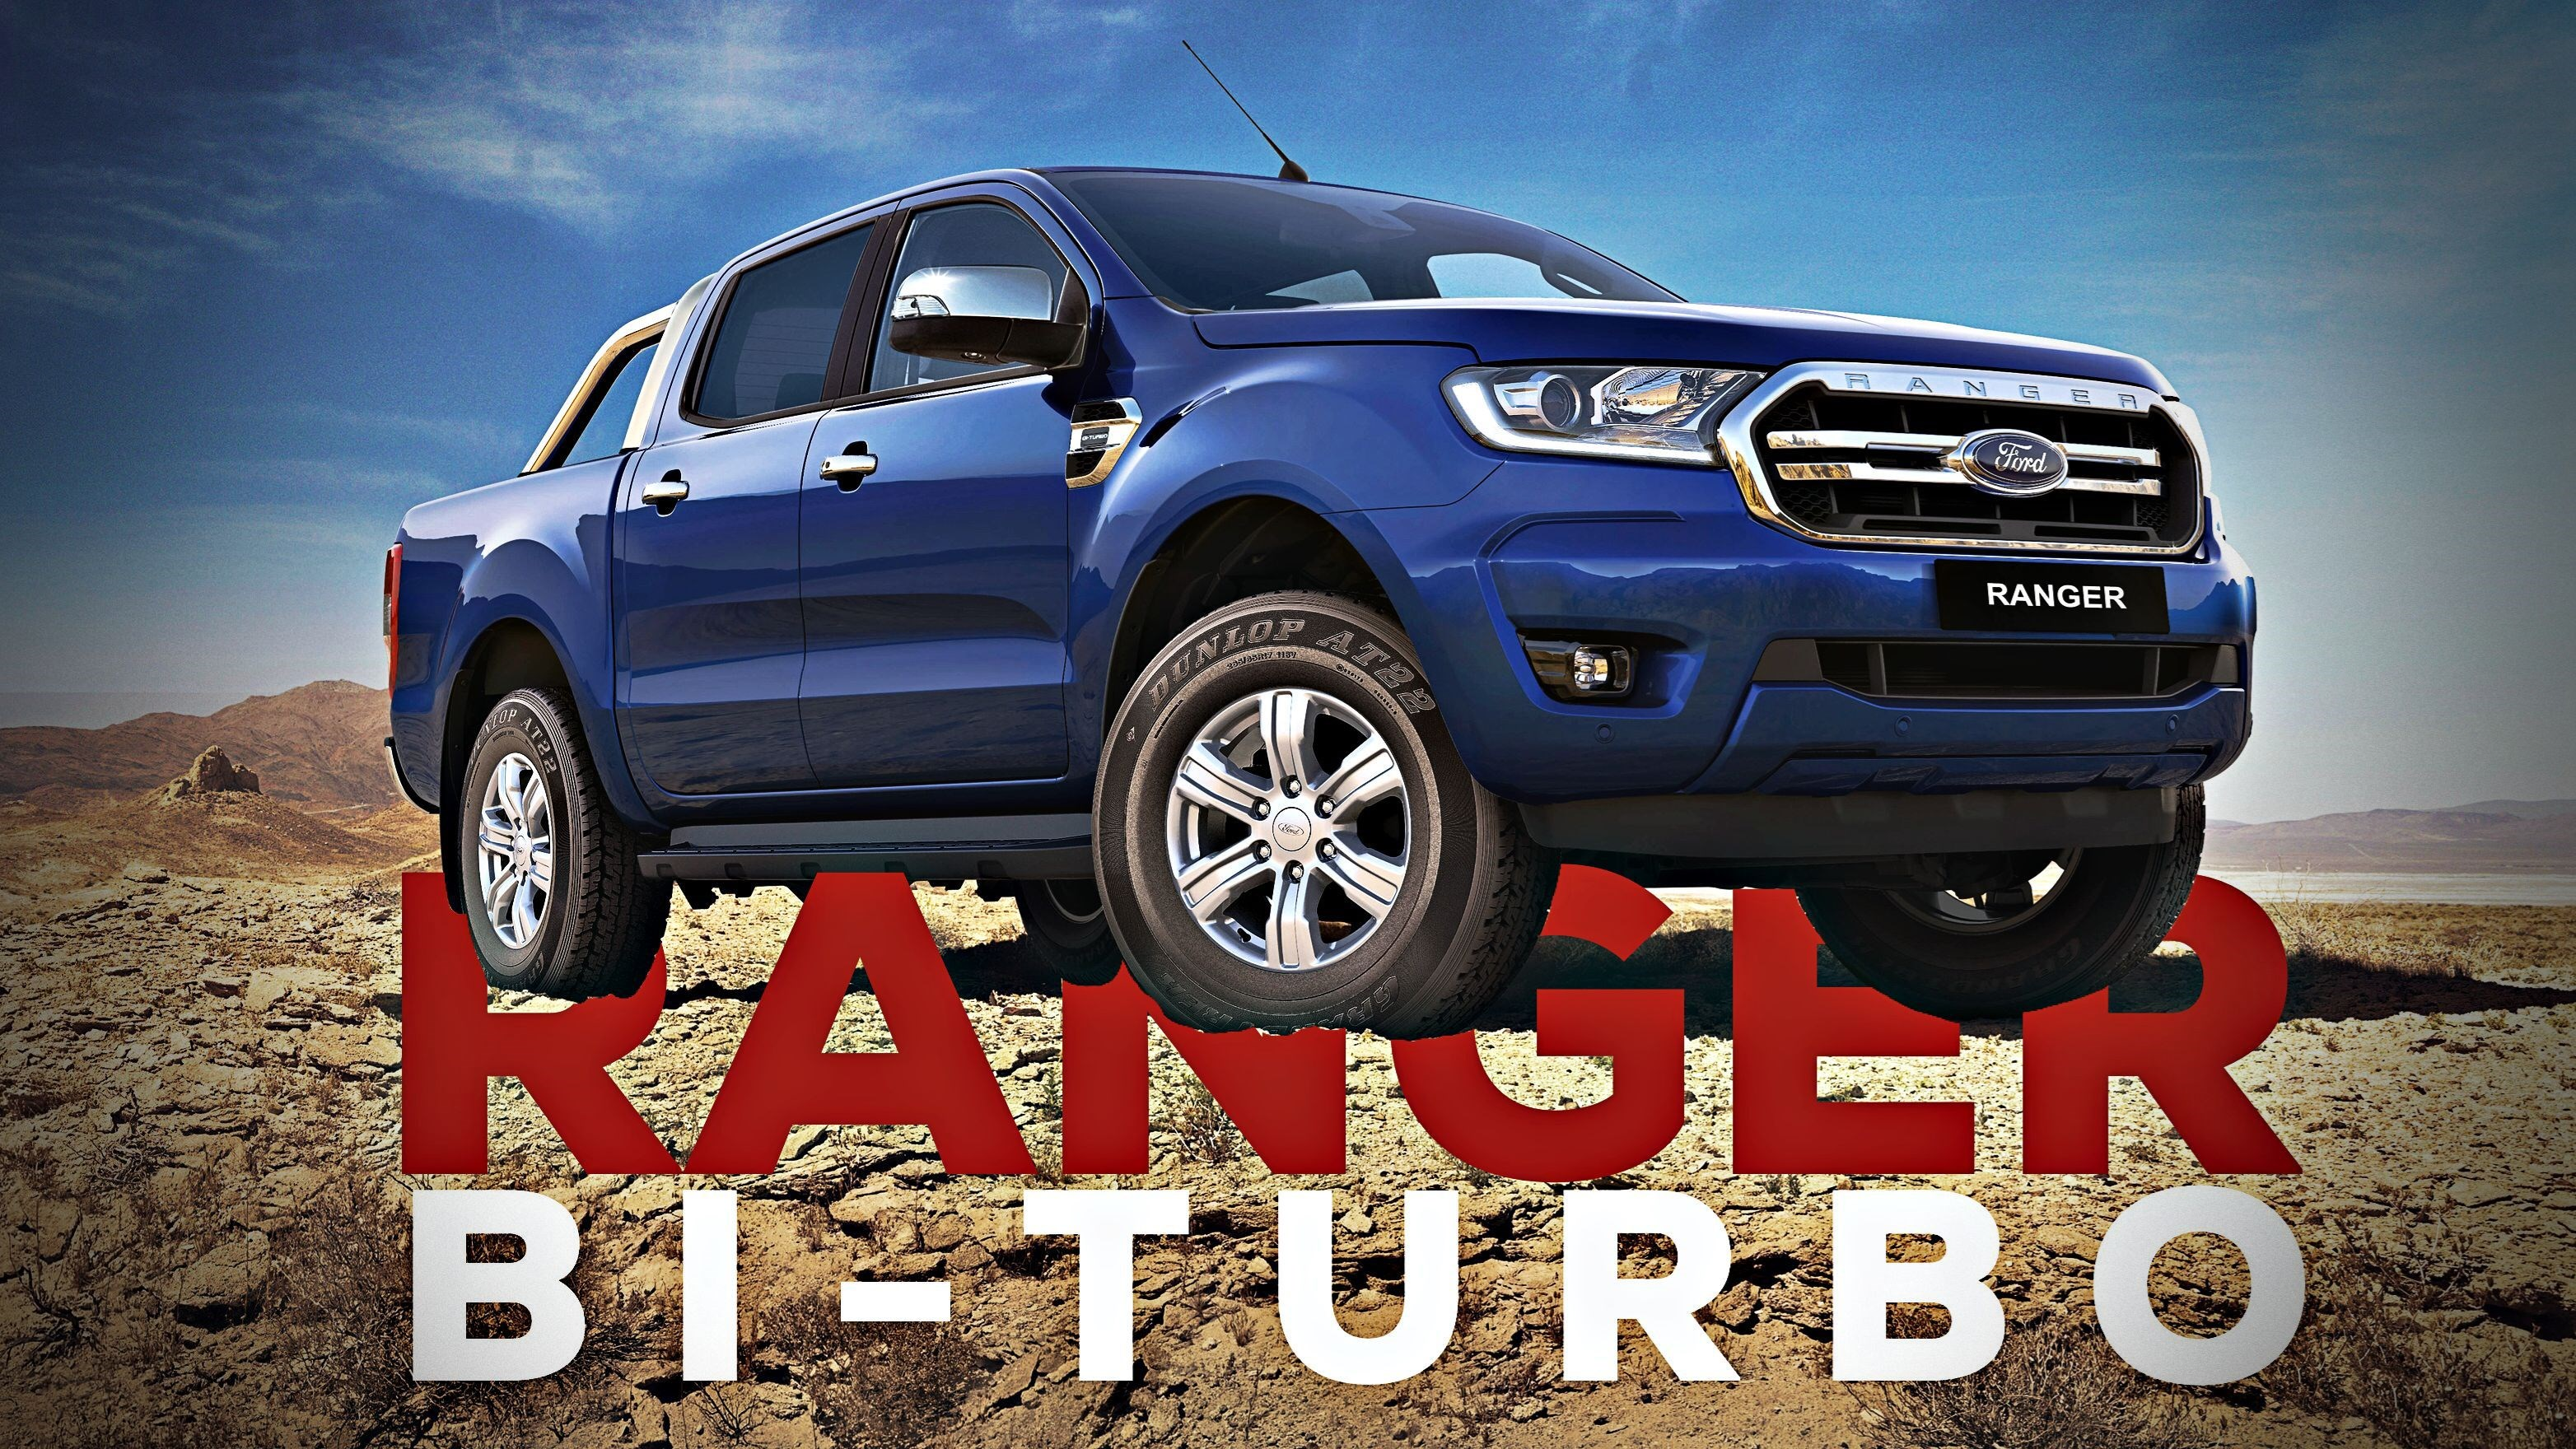 2019 Ford Ranger - Bi-Turbo Raptor Performance Goes Wide